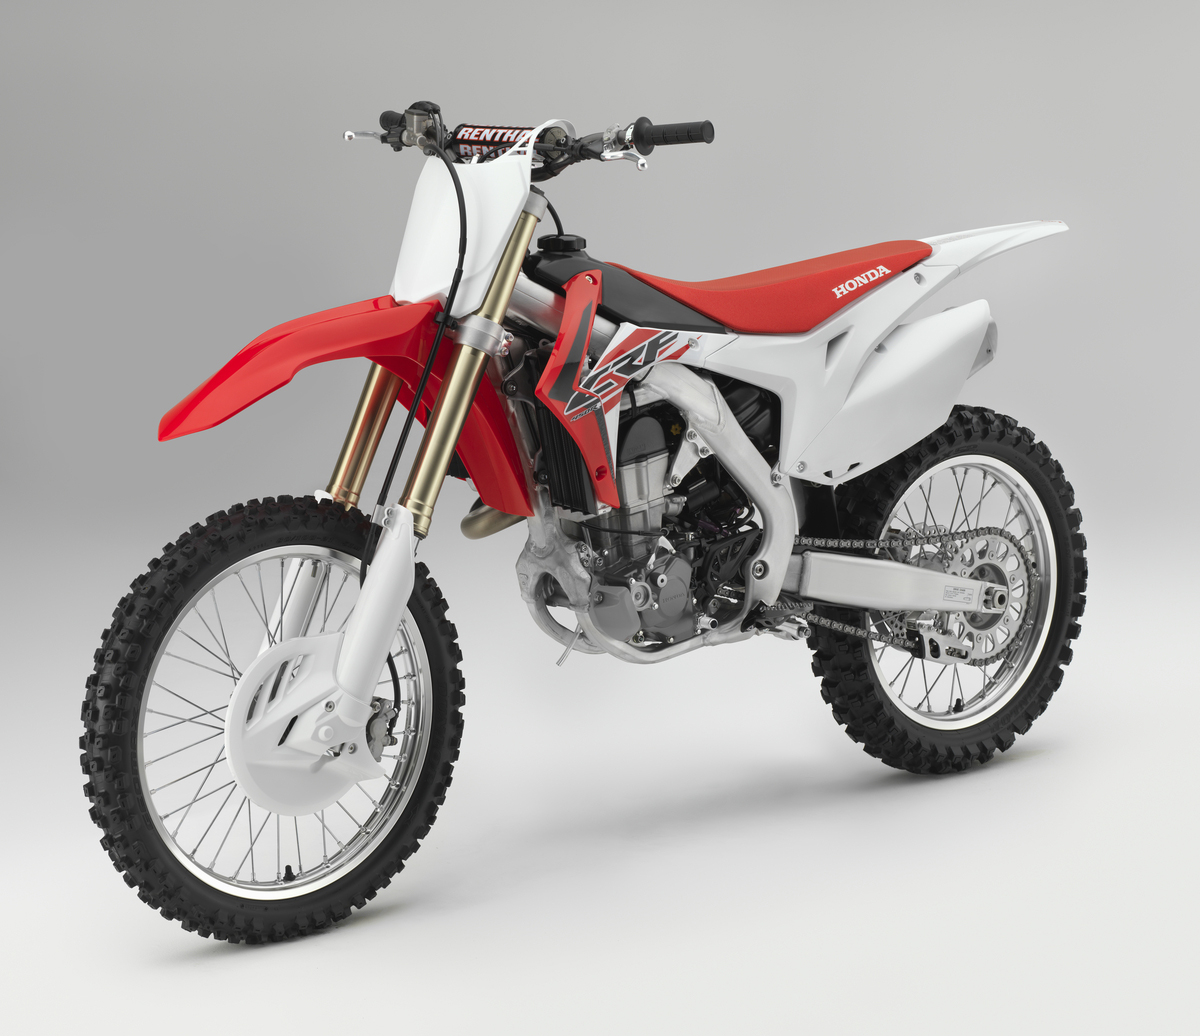 2018 honda 85.  honda 2015 honda crf450r on 2018 honda 85